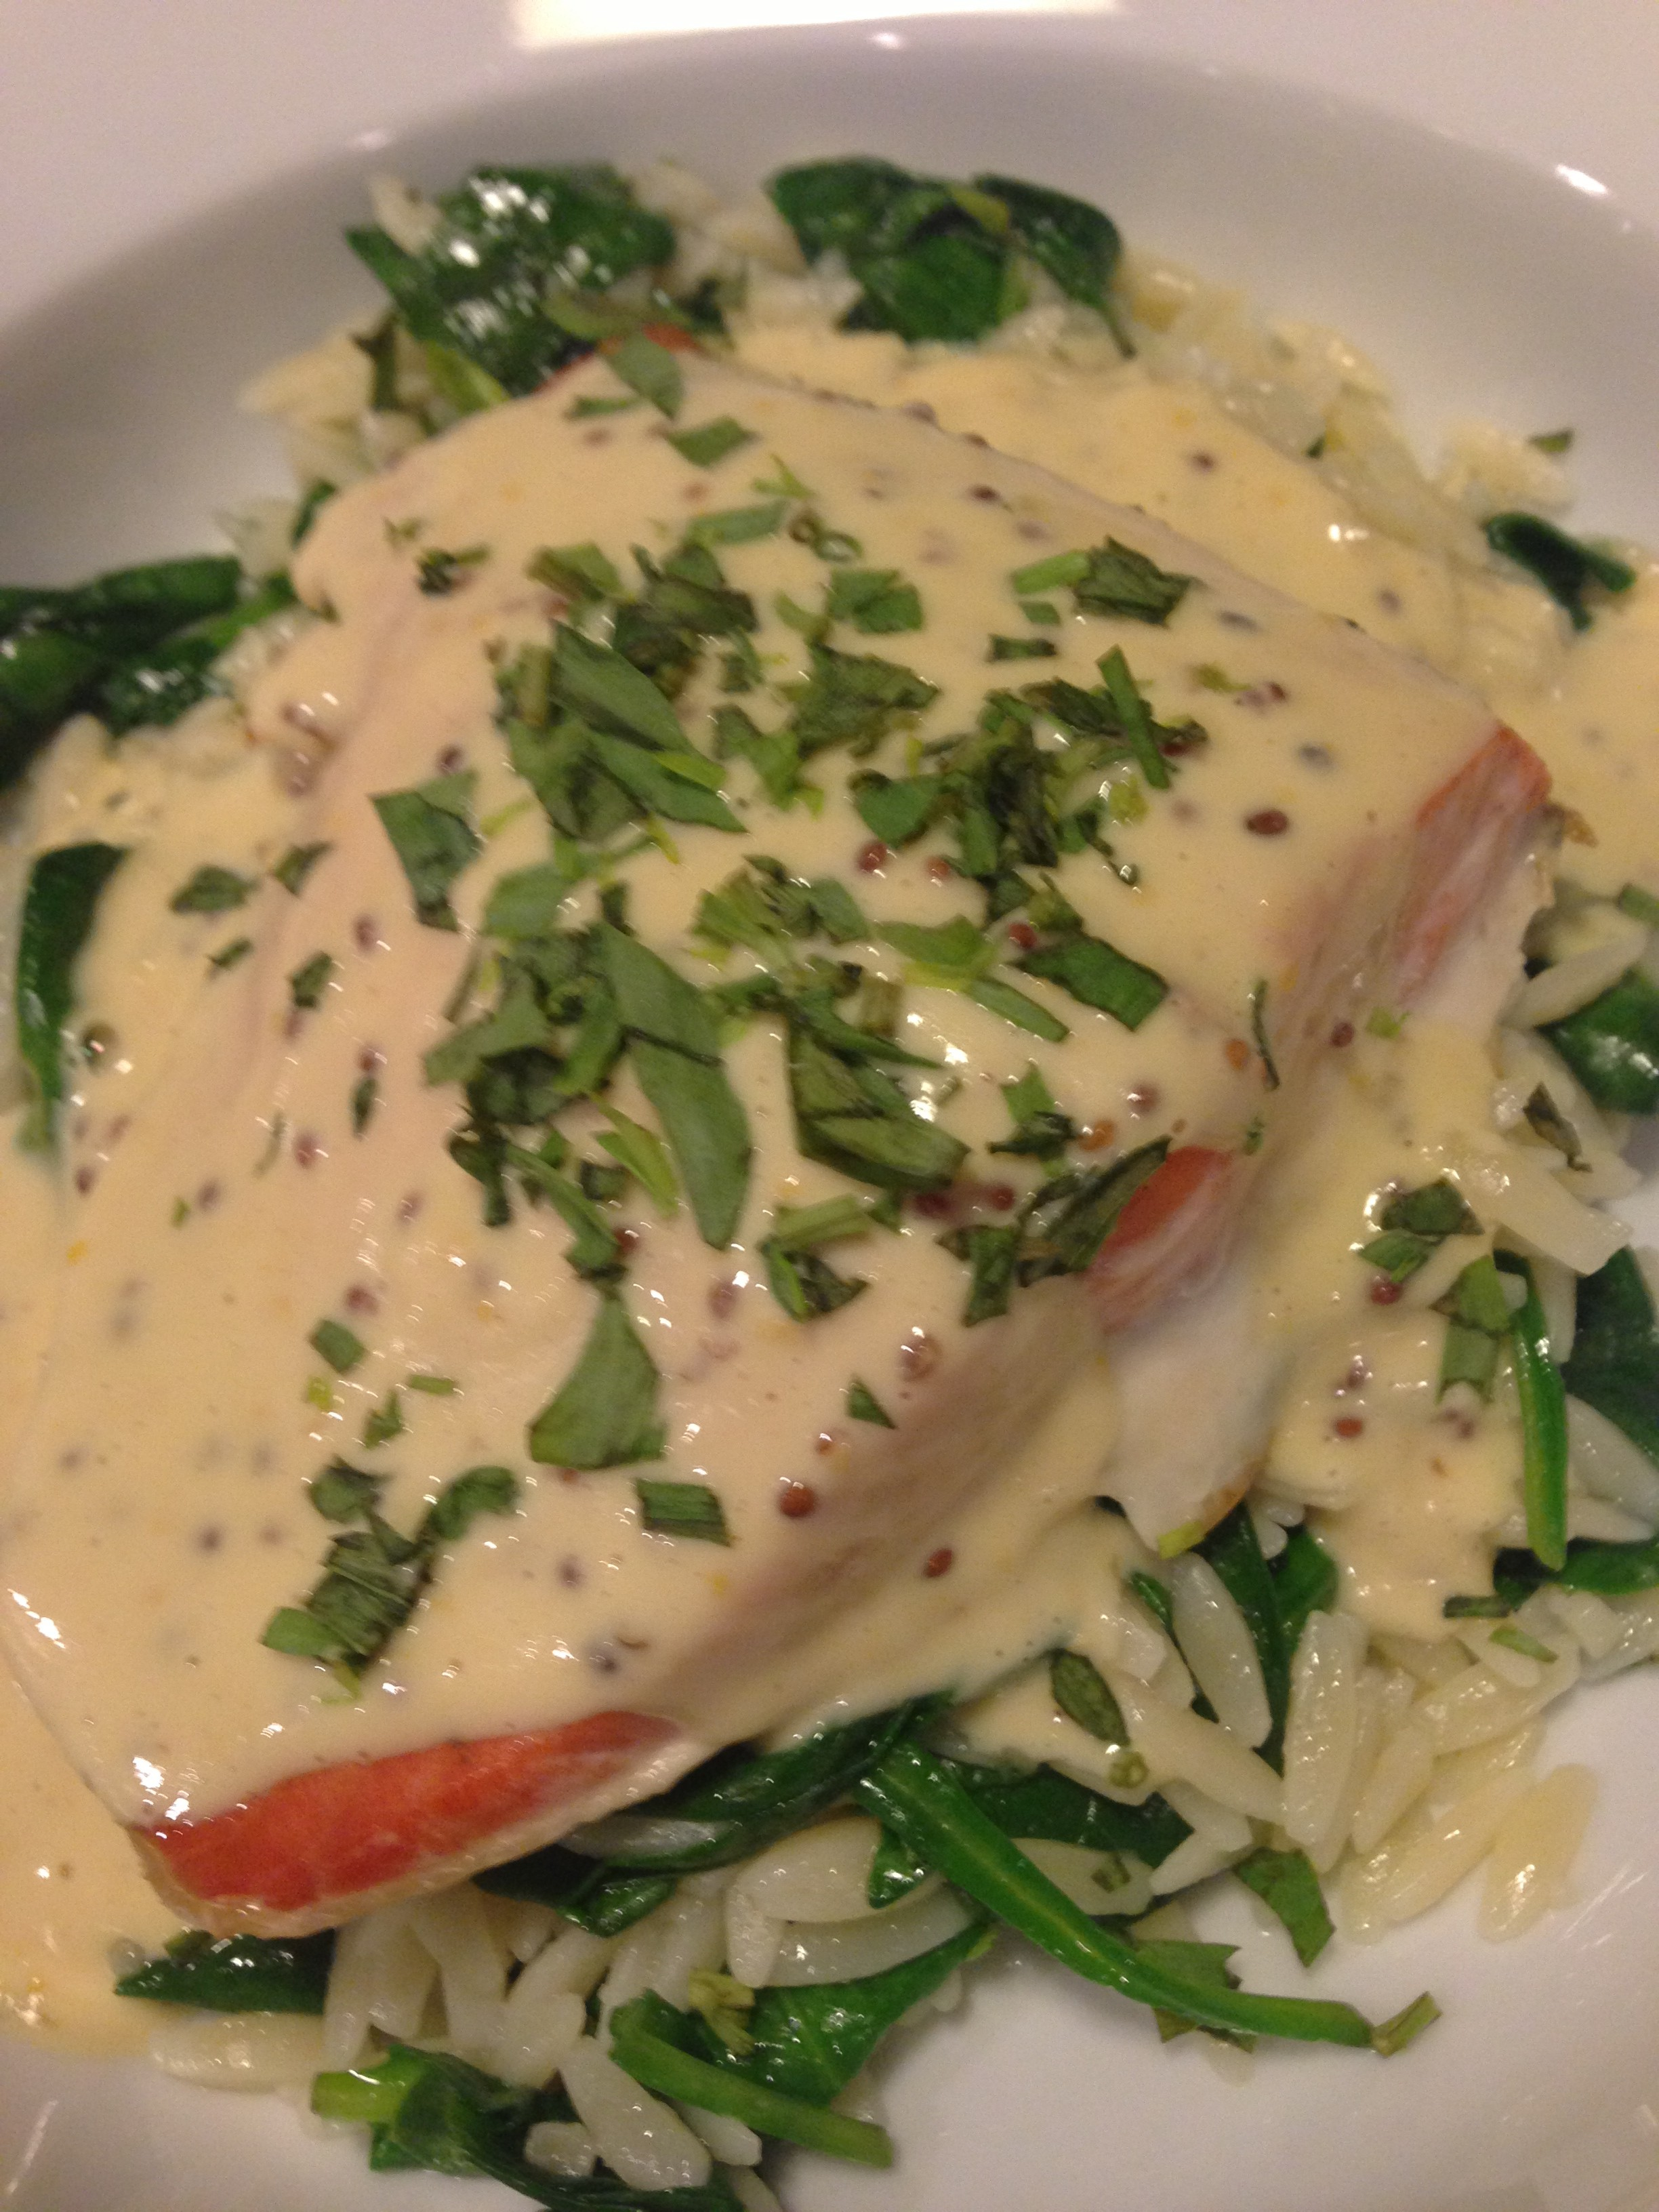 Baked Salmon with Mustard Sauce over Garlicky Spinach and Buttered Orzo